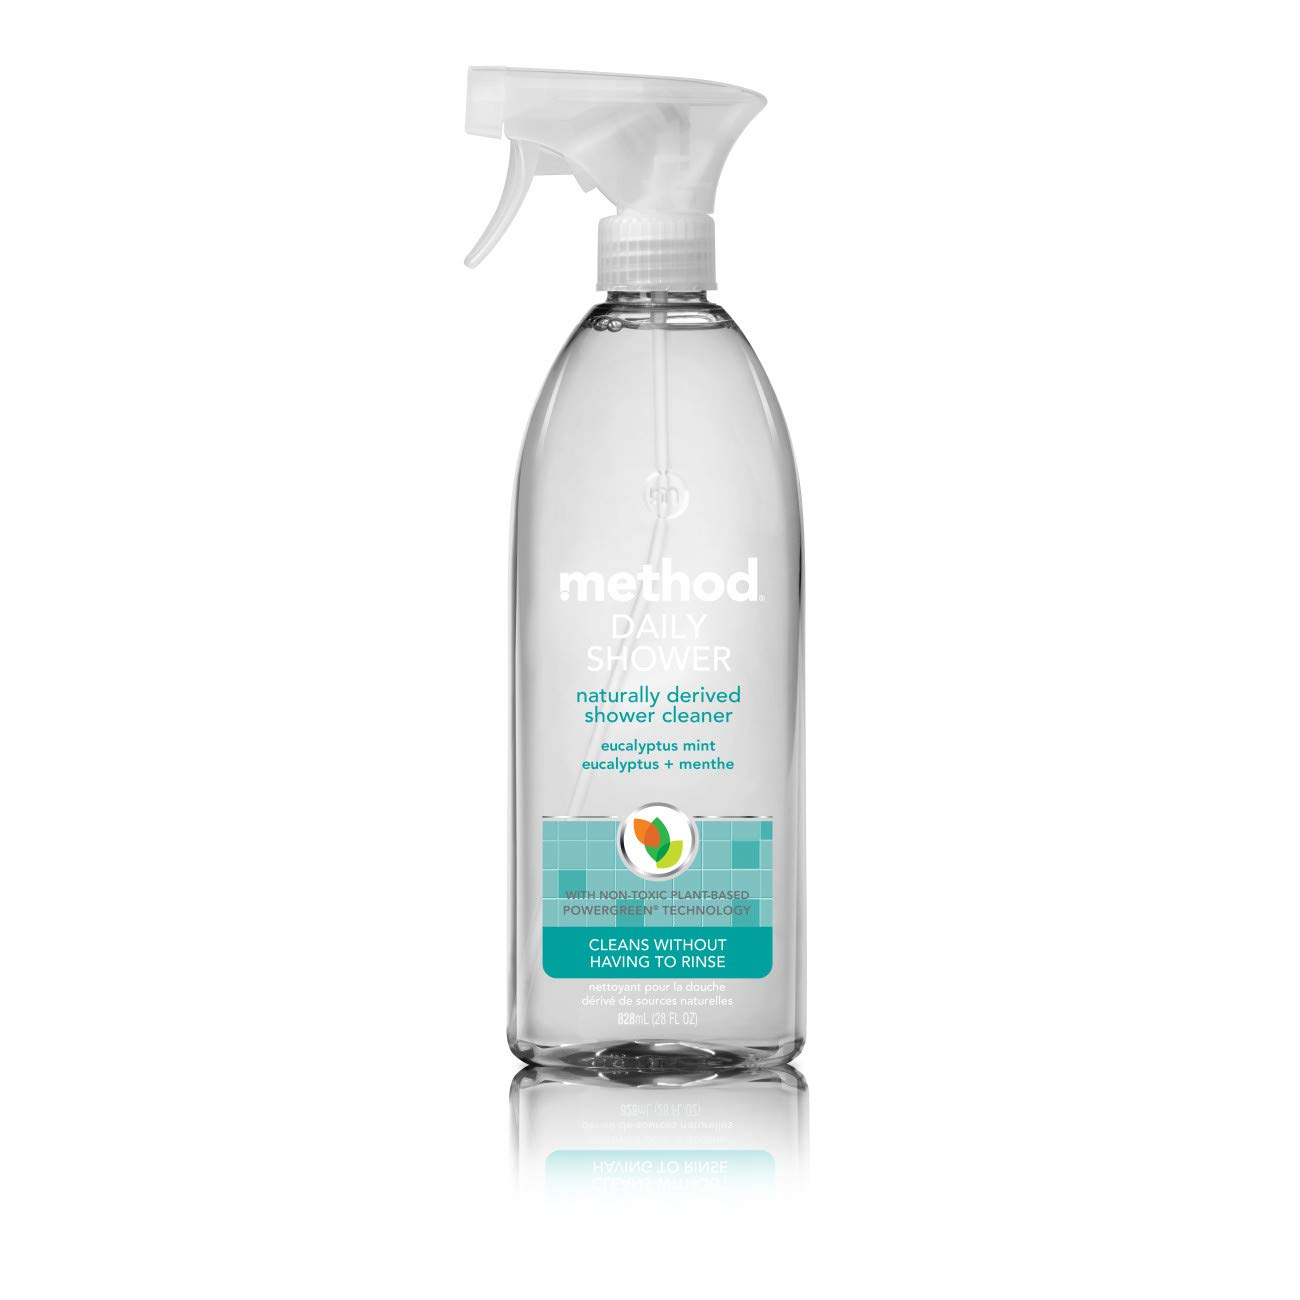 Method Daily Shower Spray Cleaner, Eucalyptus Mint, 28 Ounce (Pack 8) by Method